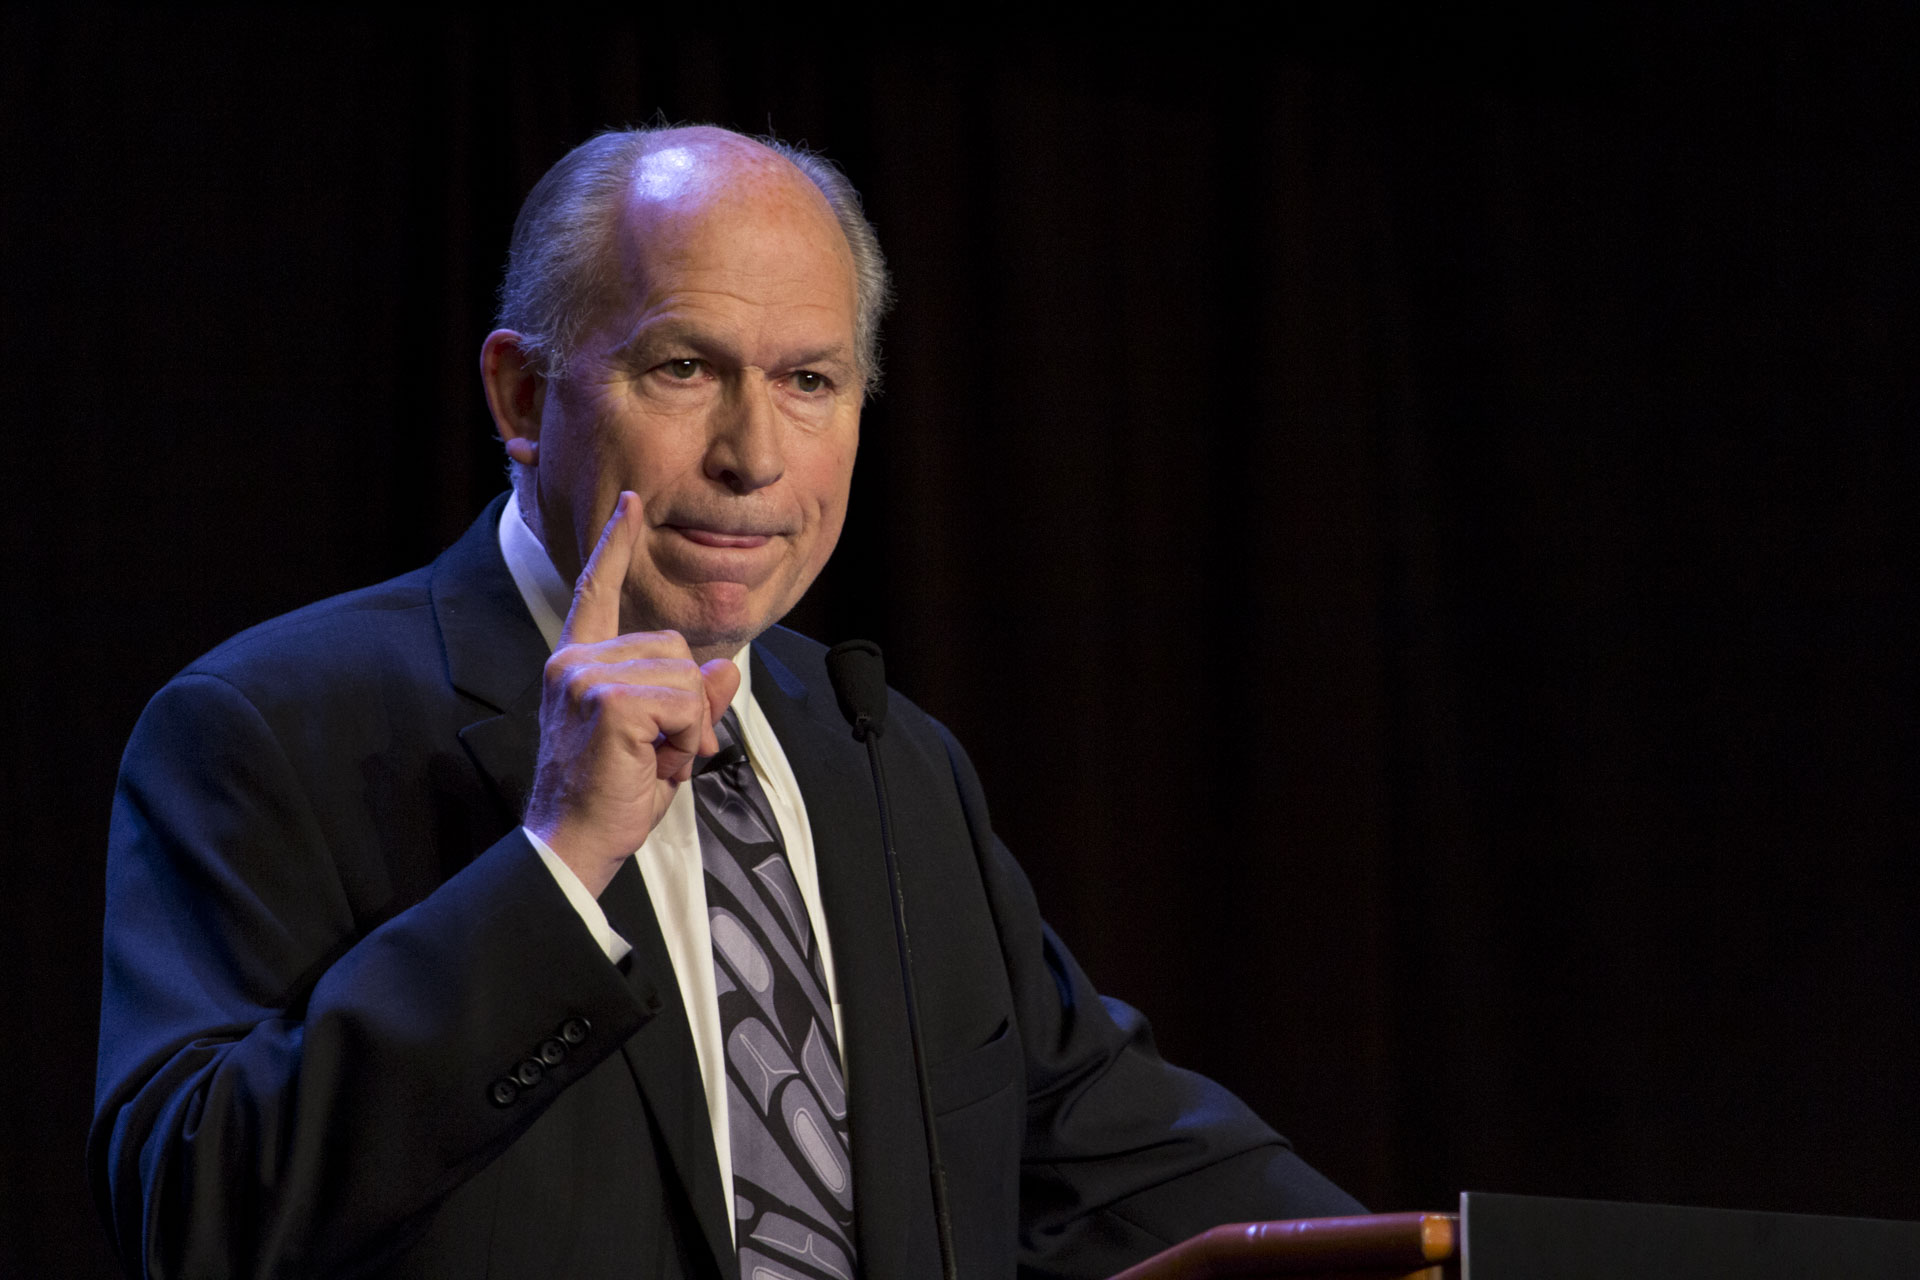 Gov. Bill Walker addresses the 49th annual Alaska Federation of Natives conference in Anchorage. (Photo by Mikko Wilson/KTOO)